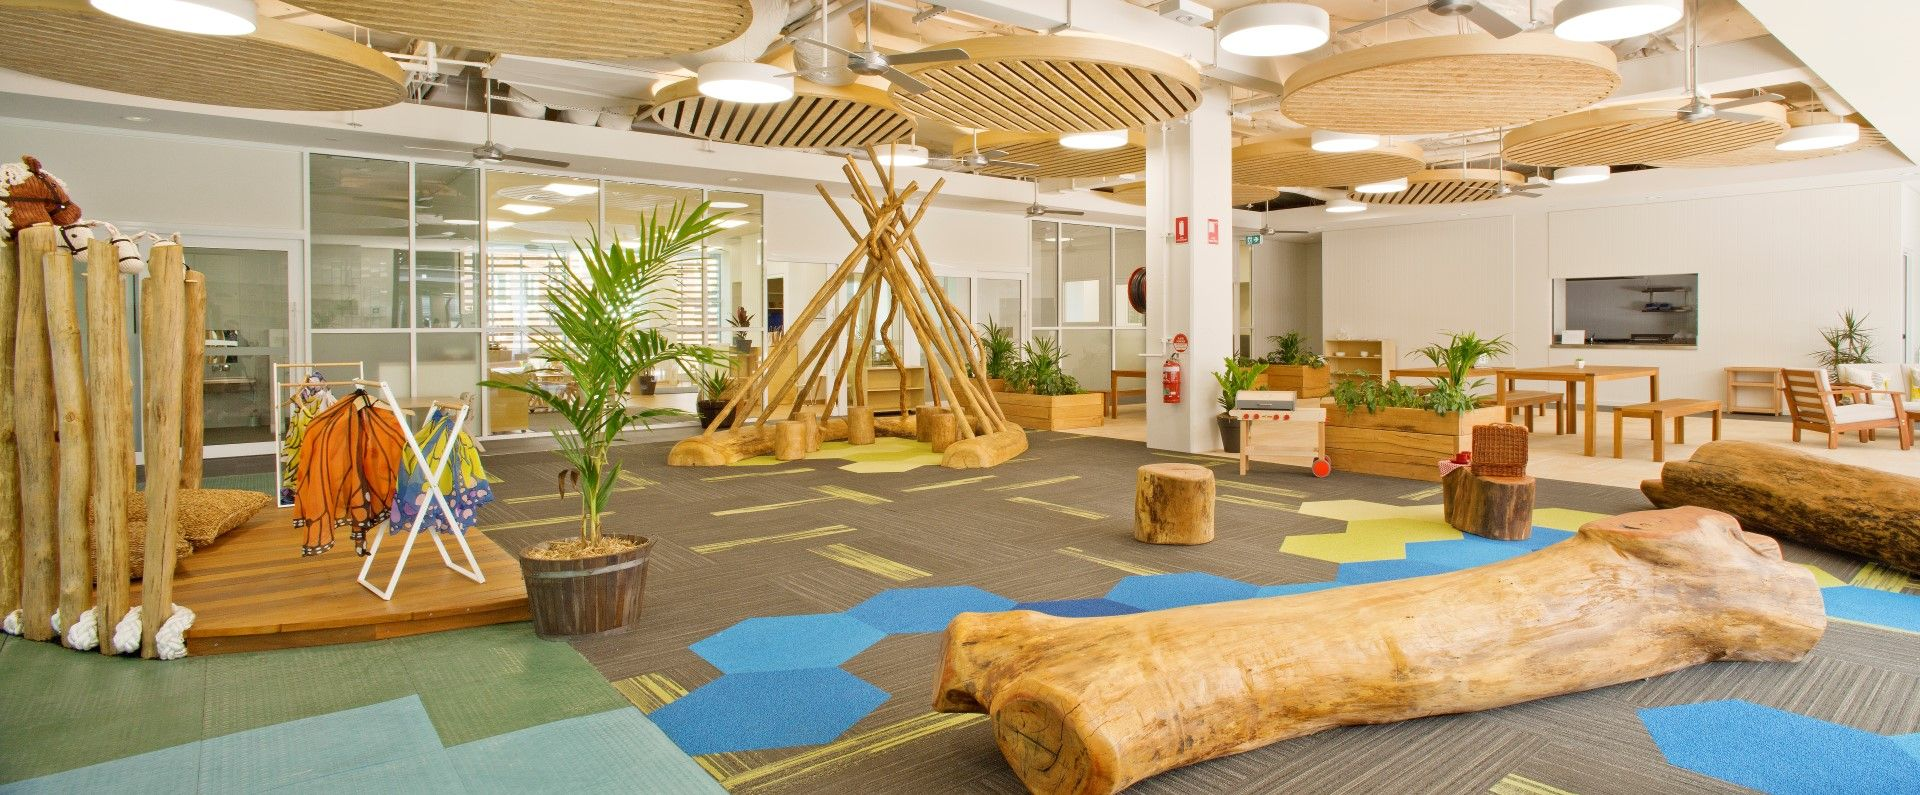 Indoor natural log playground goodstart child care for Indoor nature design challenge